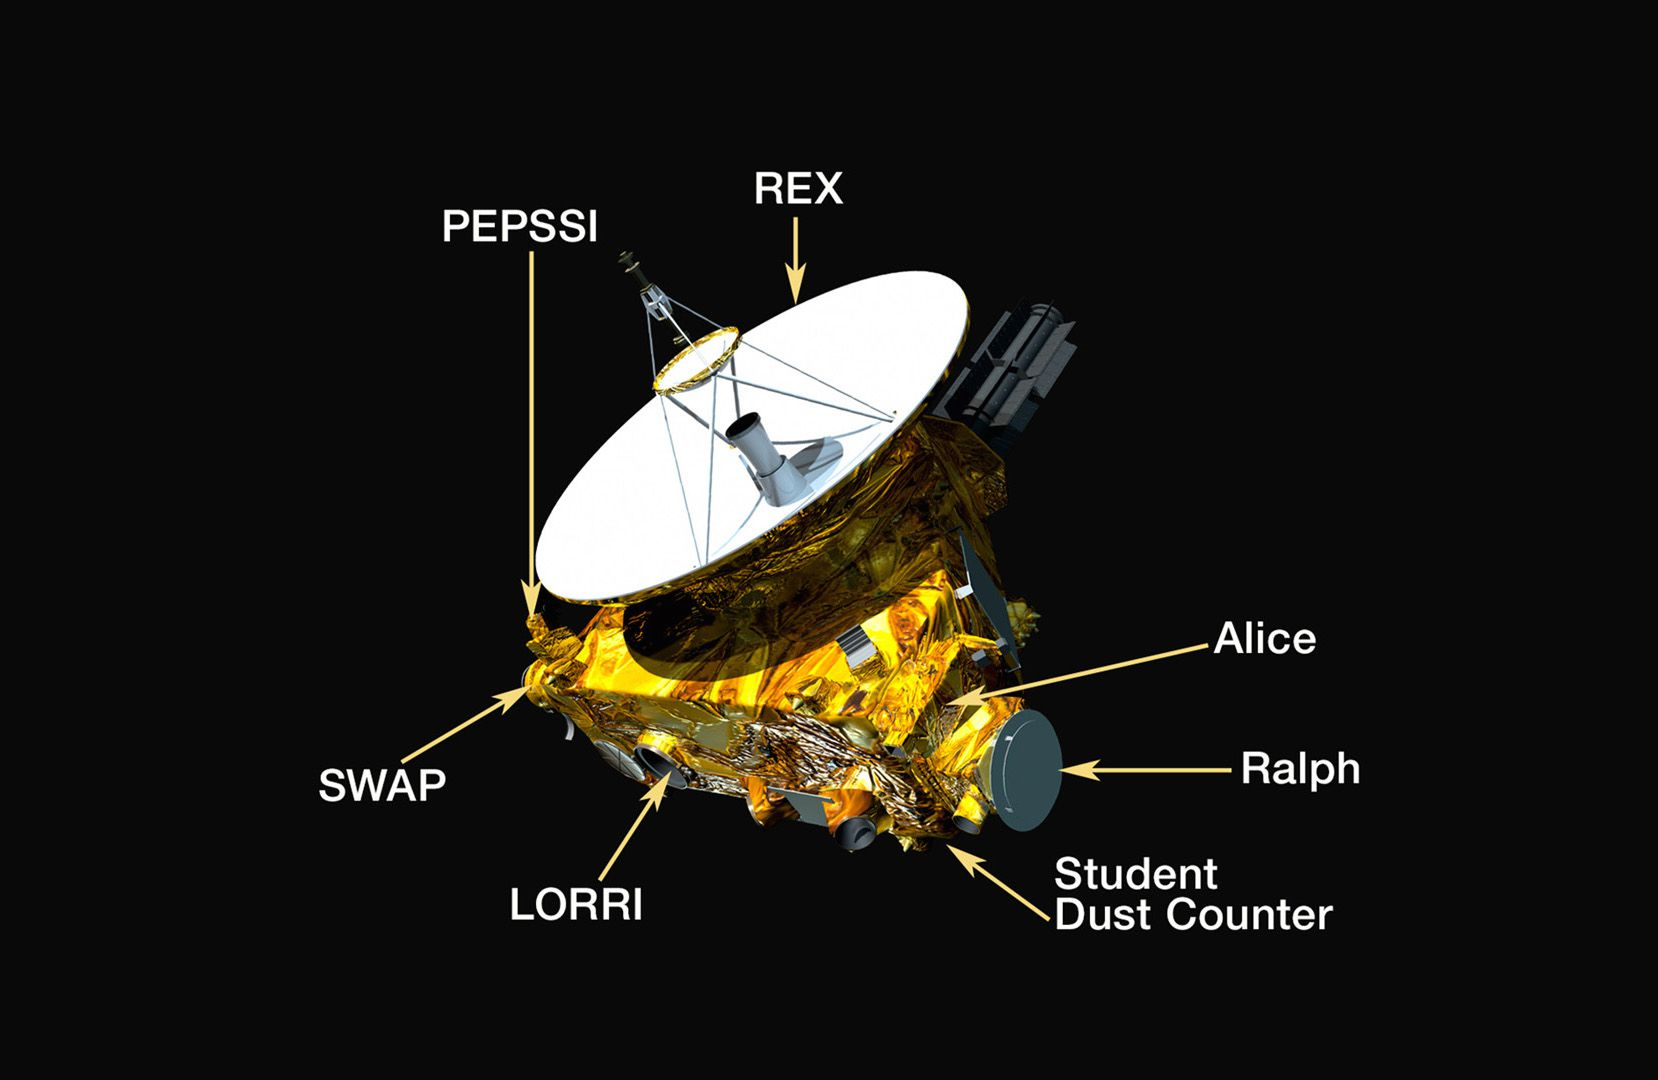 horizon space probe - photo #21